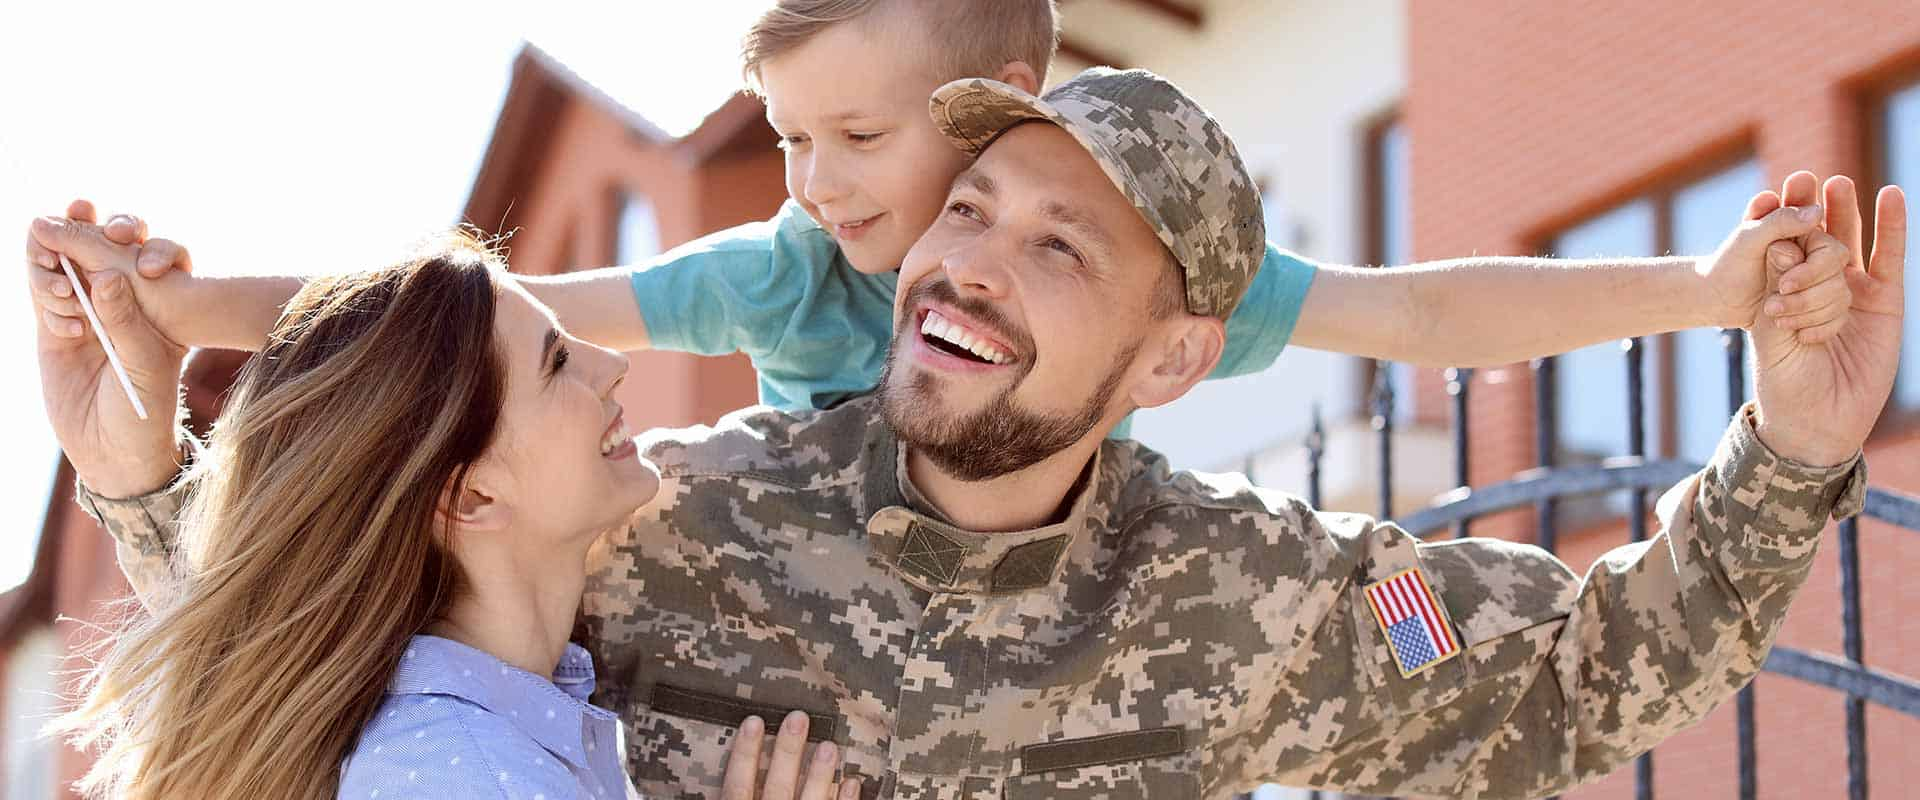 Greystone Properties GreyCard provides great benefits to Military Tenants who rent from Greystone